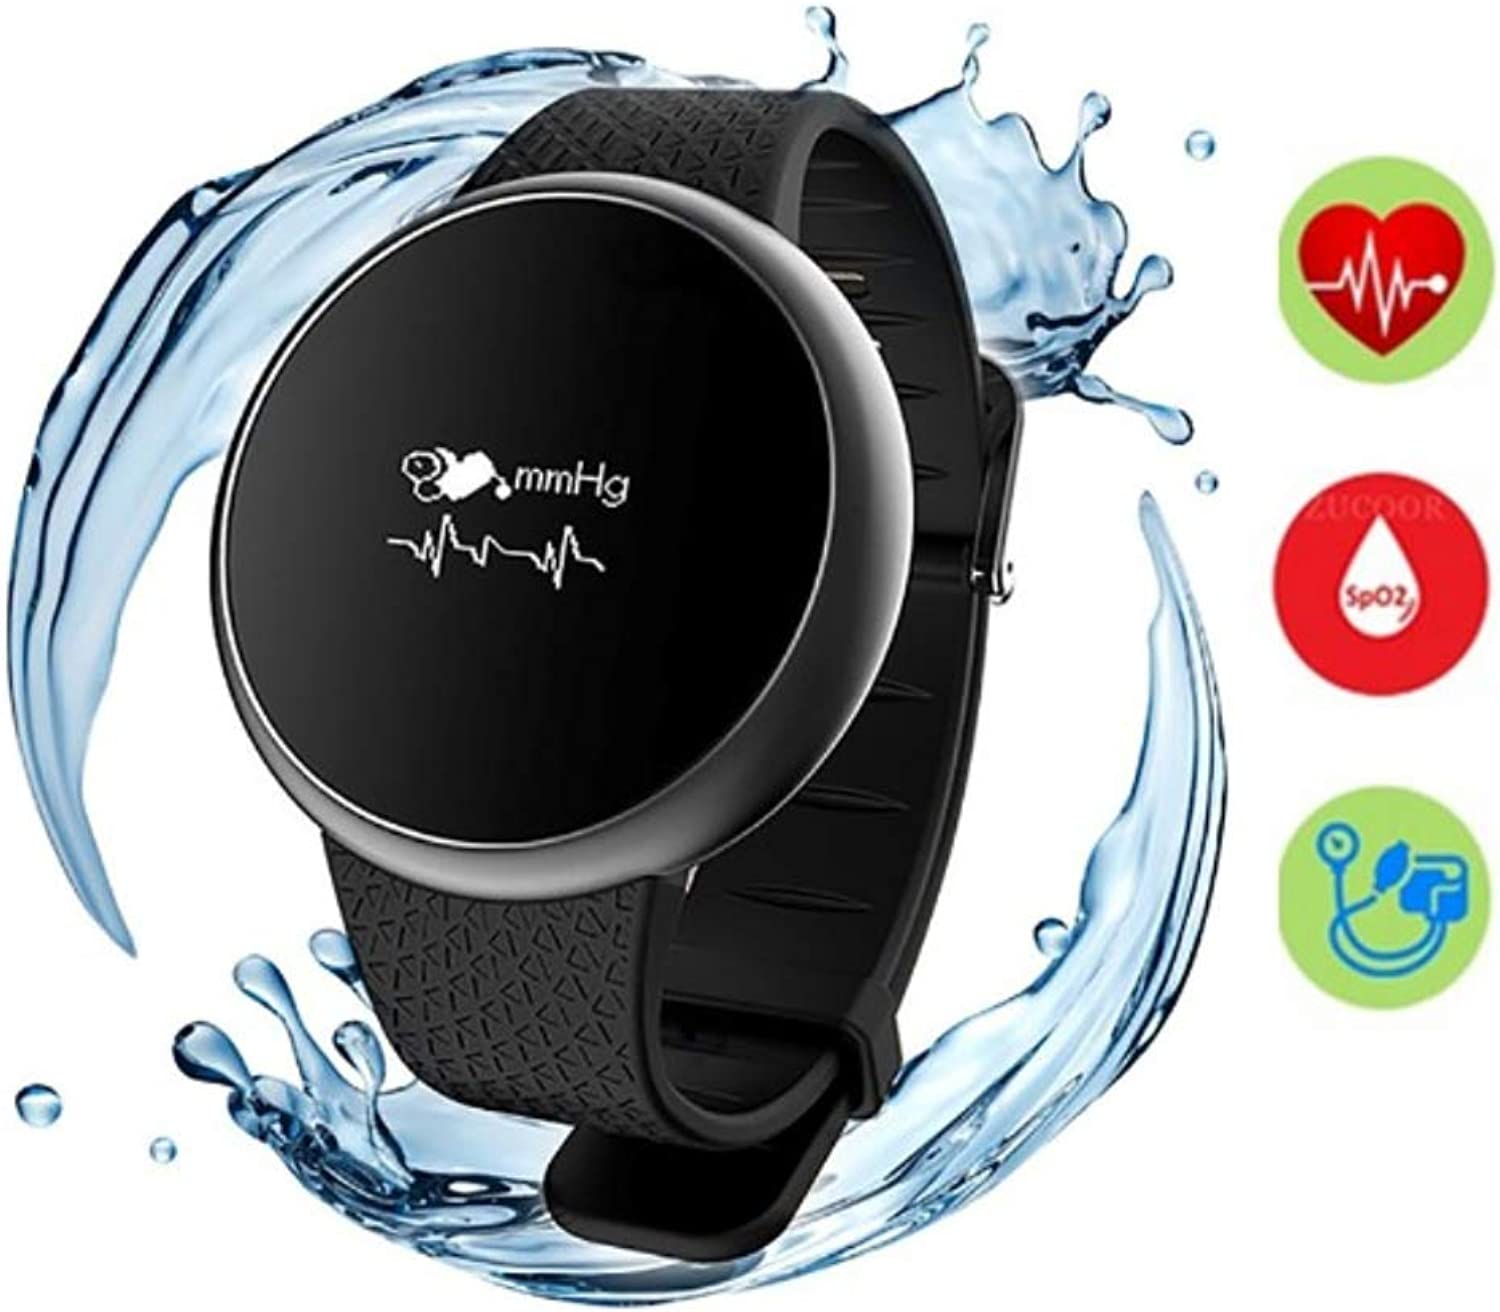 TLgf Blautooth Smart Watch, Tracker-Herzfrequenz und Blautdruck 4 in 1 Monitoringpedometer, IP67 Wasserdichte Sportfitness, Kinderfrauengeruhren